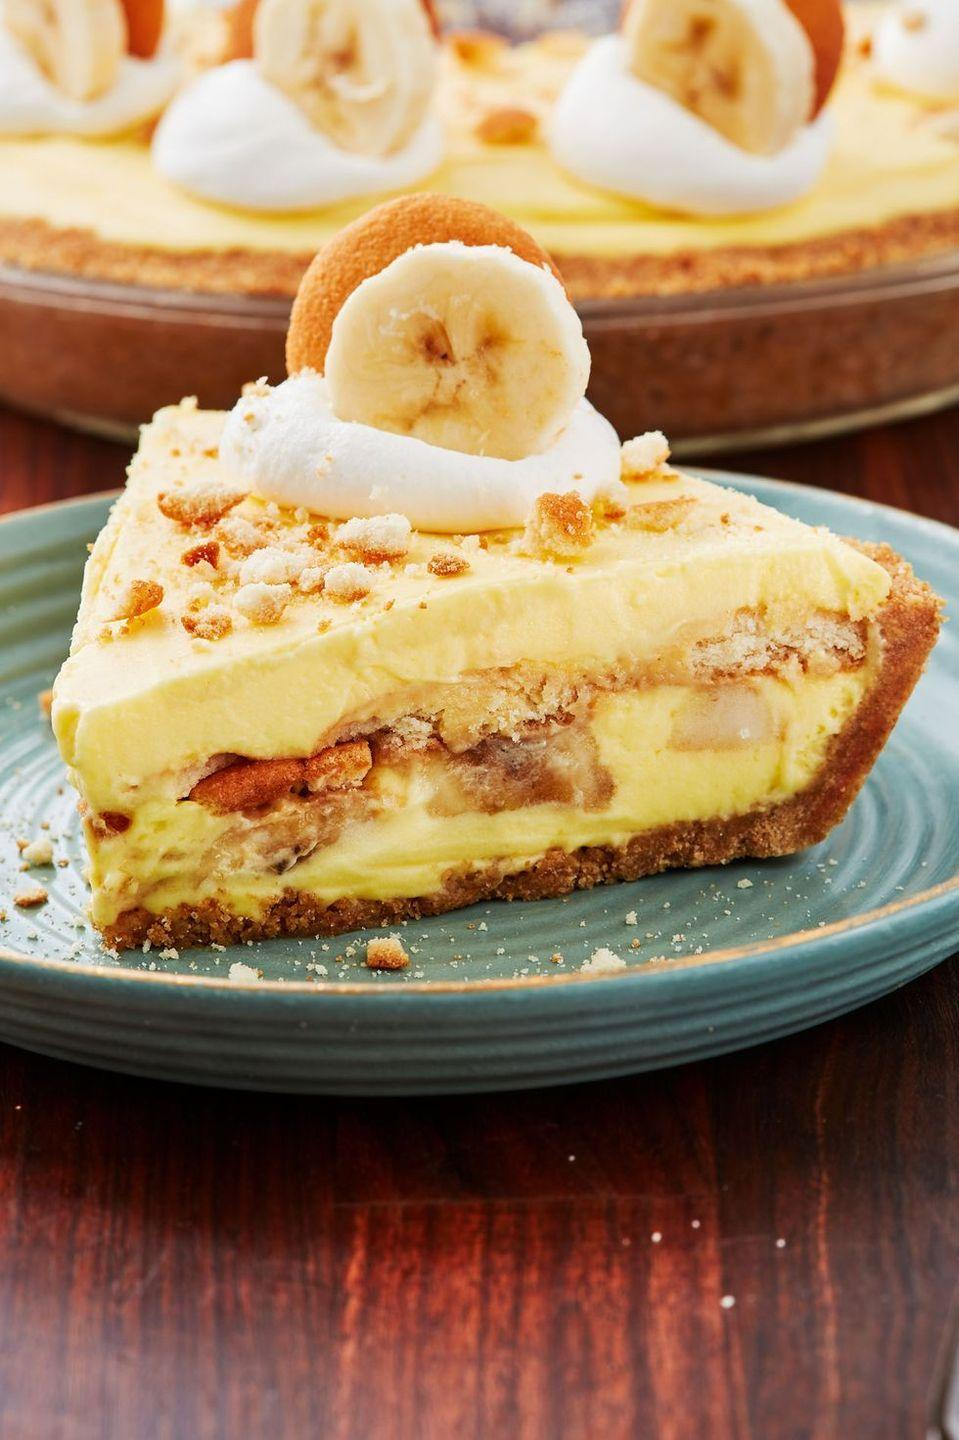 """<p>You won't be able to resist.</p><p>Get the recipe from <a href=""""https://www.delish.com/cooking/recipe-ideas/recipes/a52780/banana-pudding-cheesecake-recipe/"""" rel=""""nofollow noopener"""" target=""""_blank"""" data-ylk=""""slk:Delish"""" class=""""link rapid-noclick-resp"""">Delish</a>.</p>"""